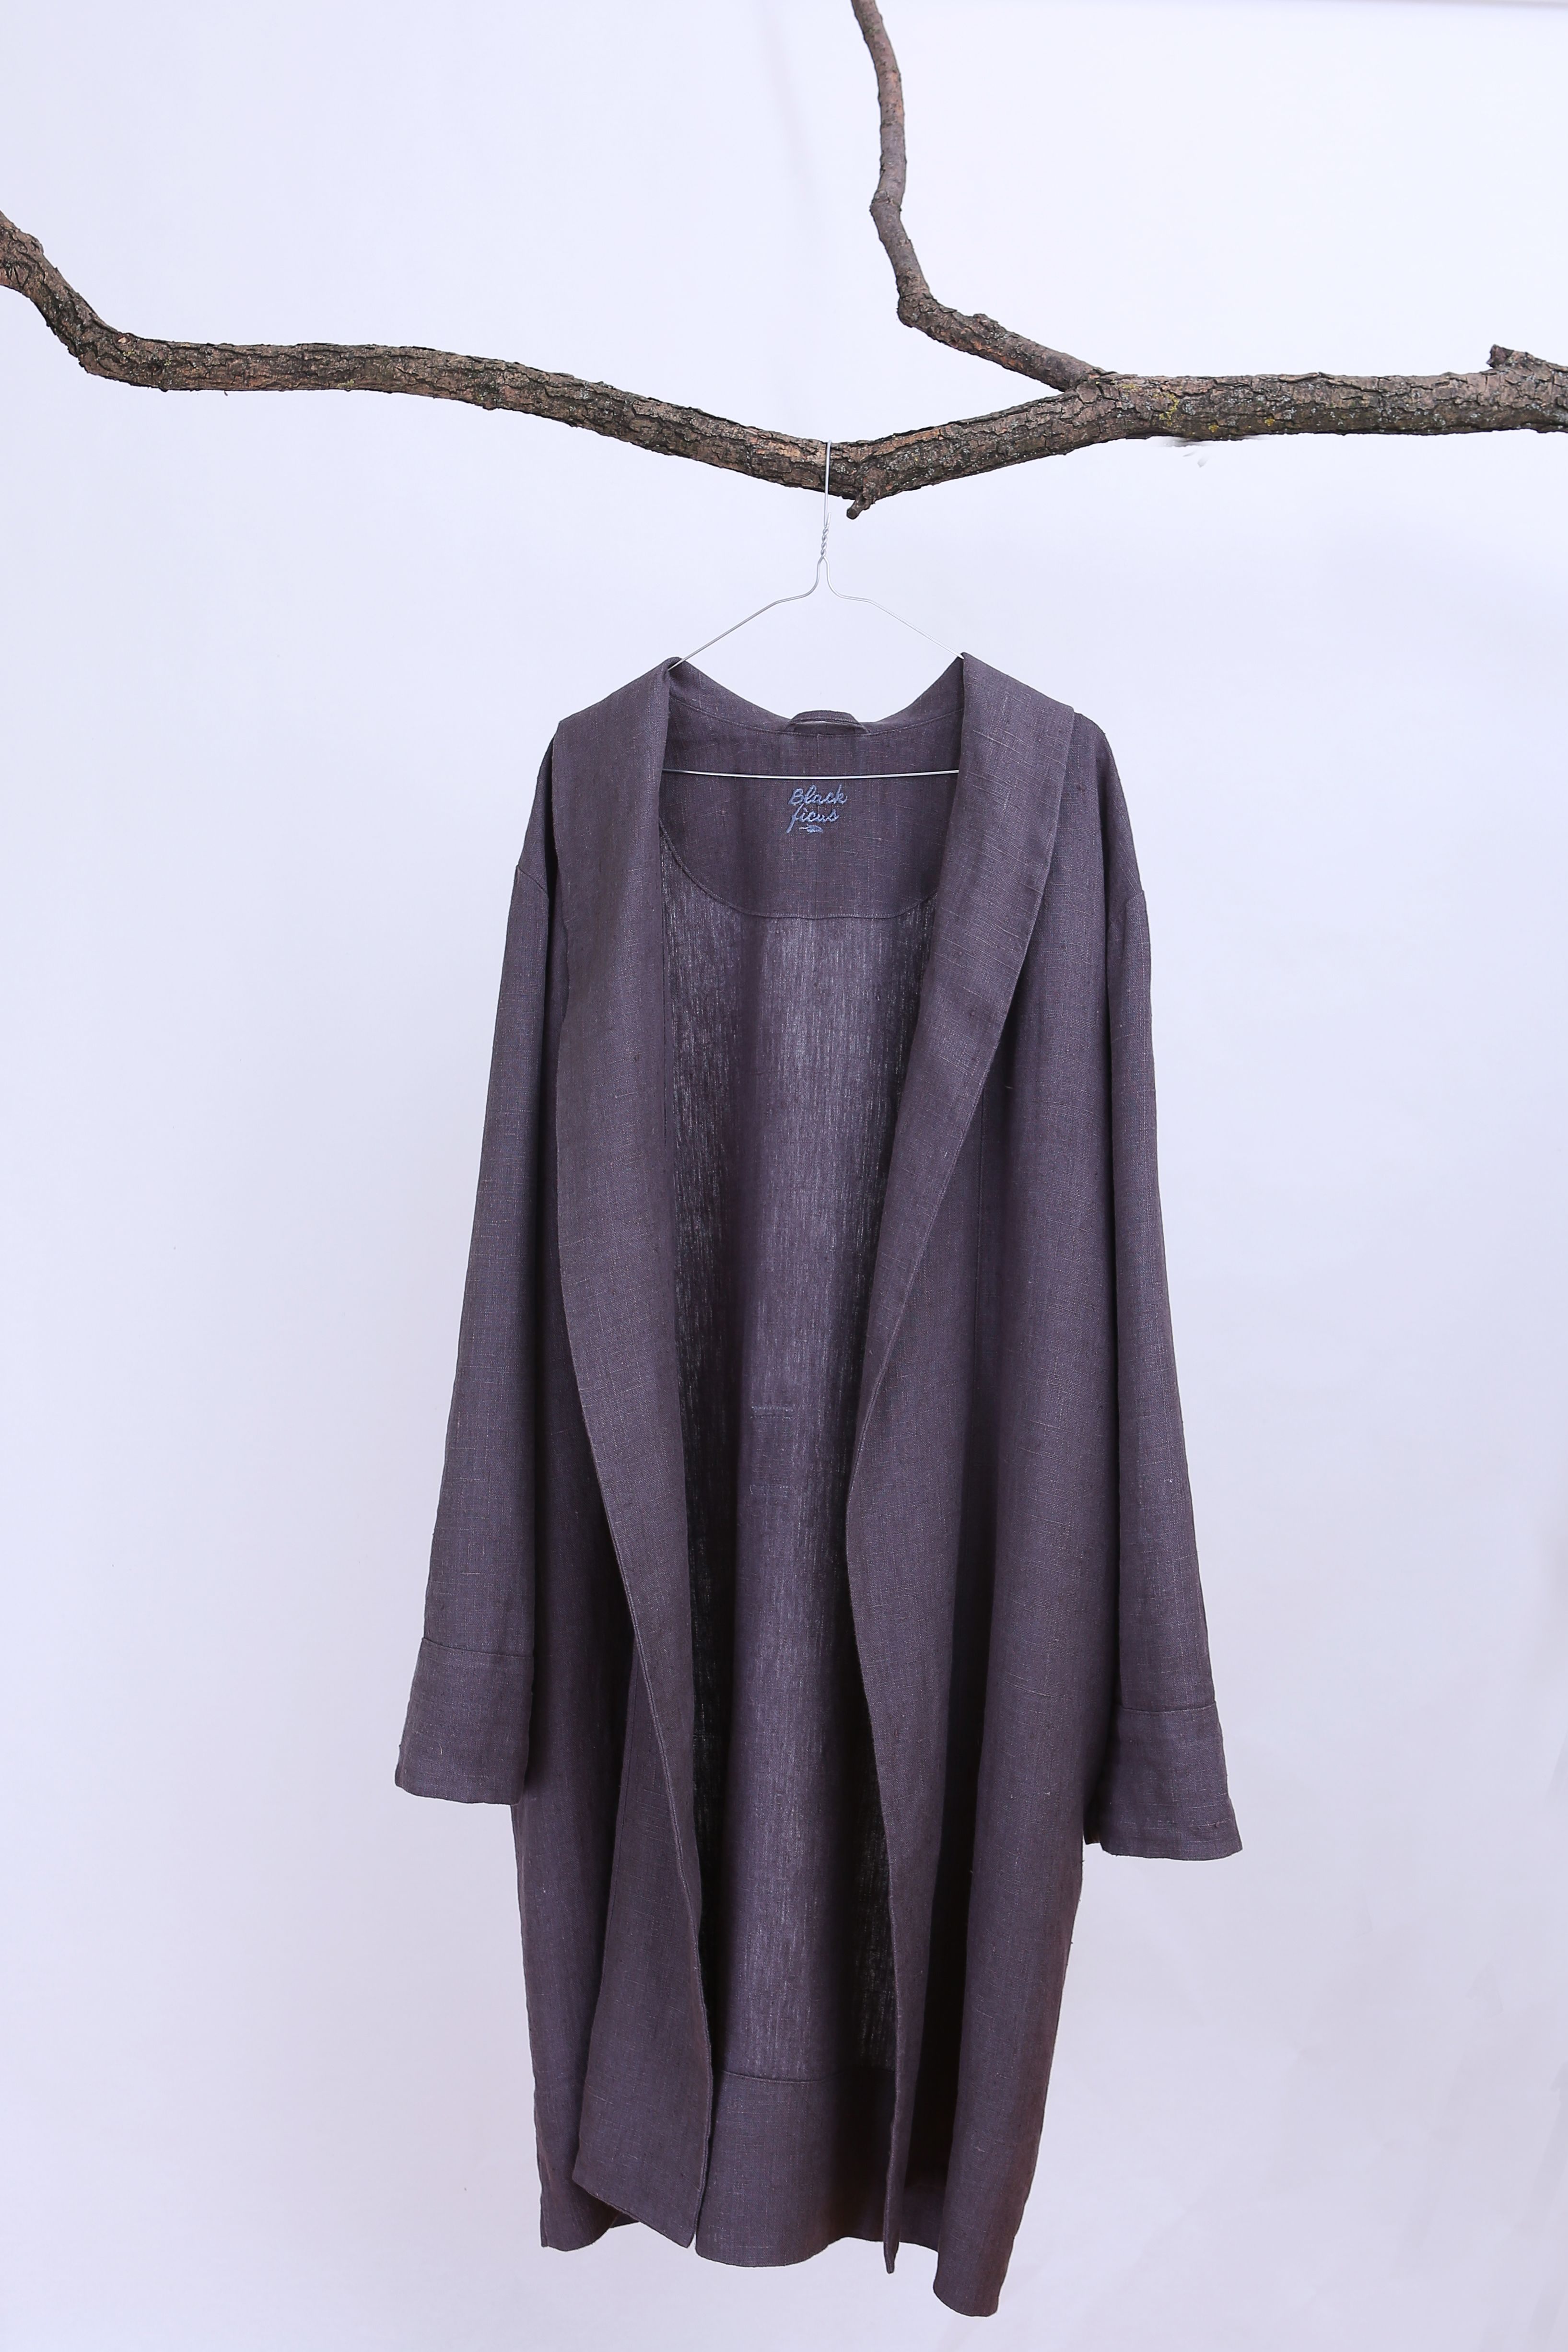 44a32c21087 Grey dressing gown for Men. Natural bathrobe. Linen clothes for man.  Homewear for man. Present for man. House coat. Personalized robe